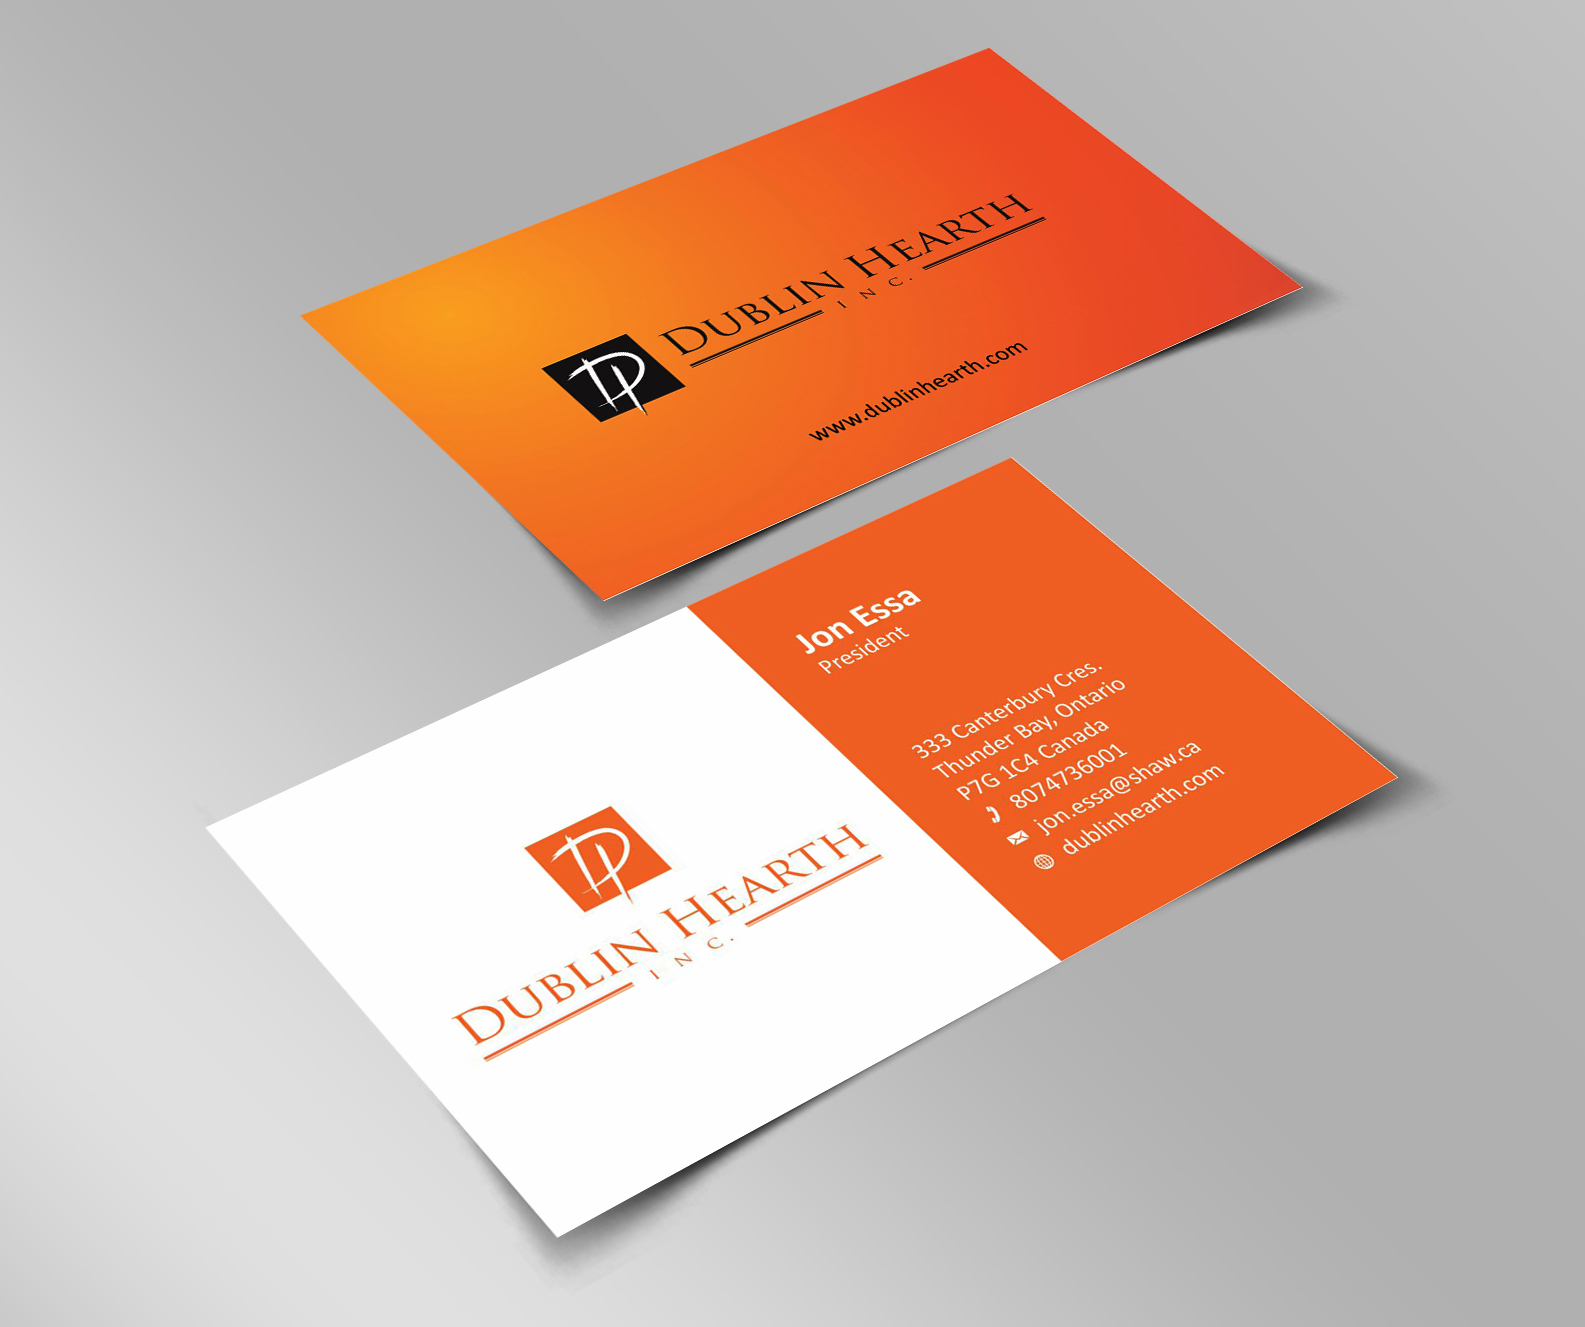 24 Hours Business Cards Gallery - Business Card Template